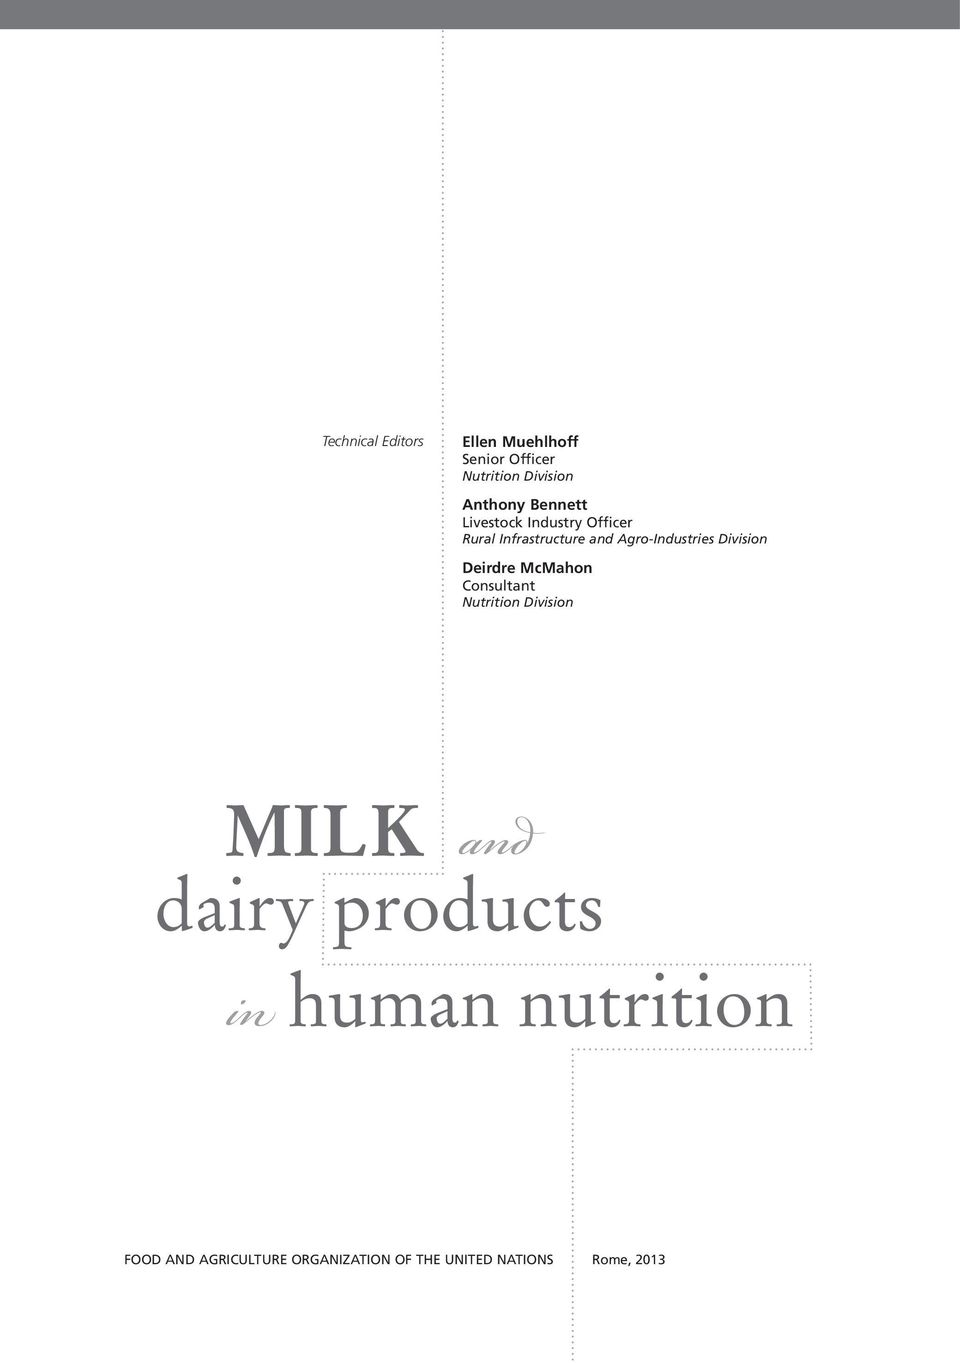 Division Deirdre McMahon Consultant Nutrition Division MILK dairy products in